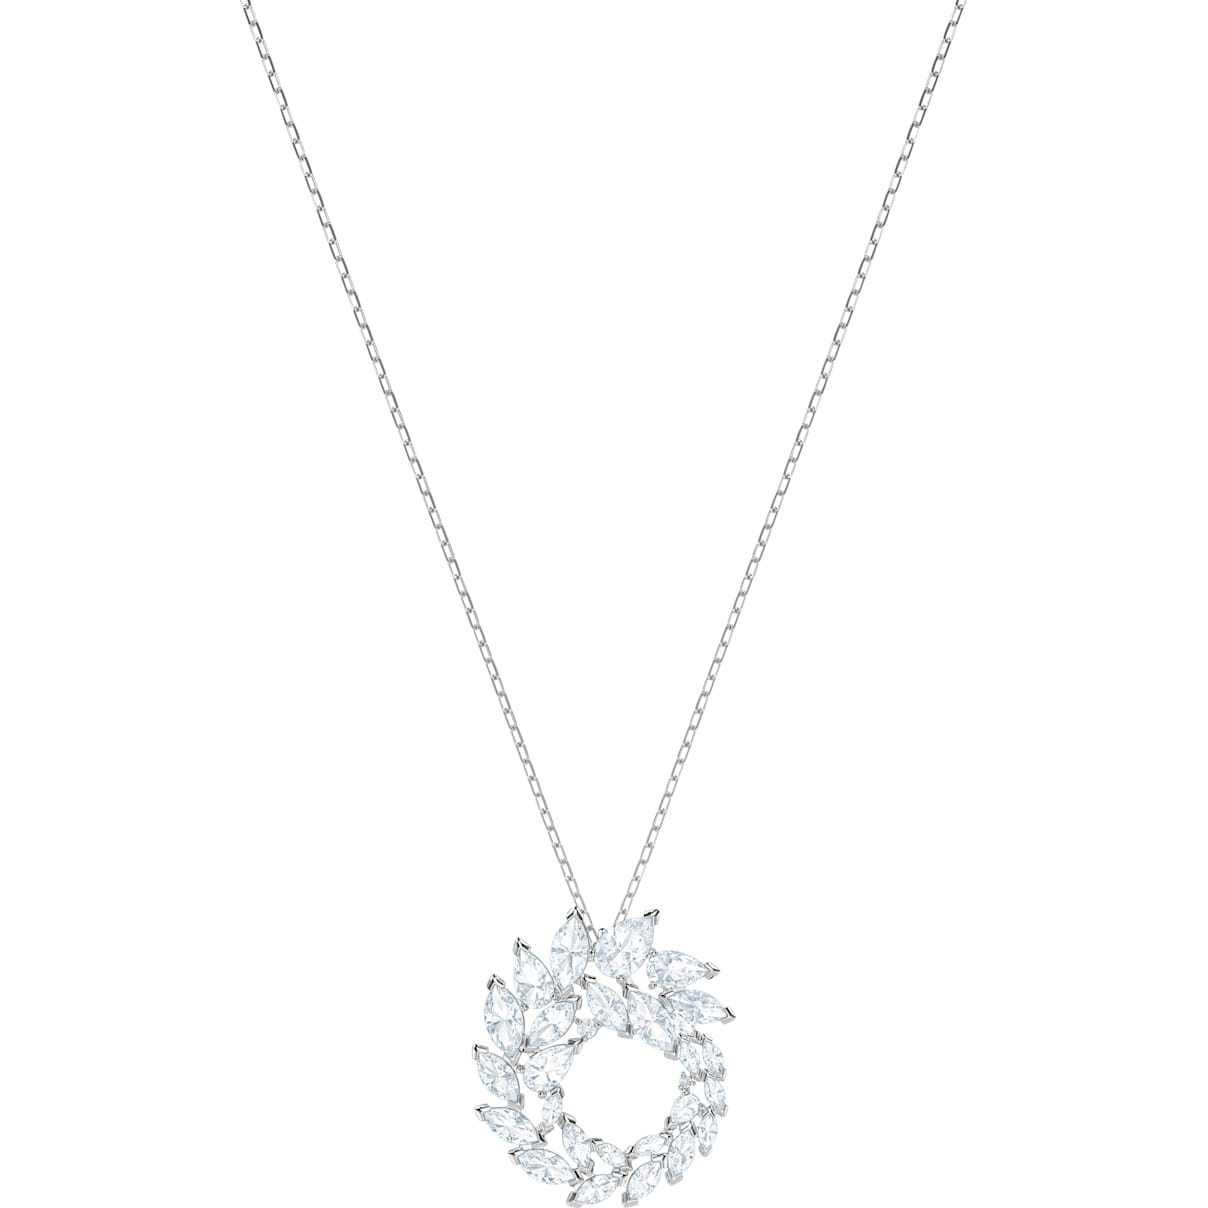 Swarovski Louison Pendant, White, Rhodium plated